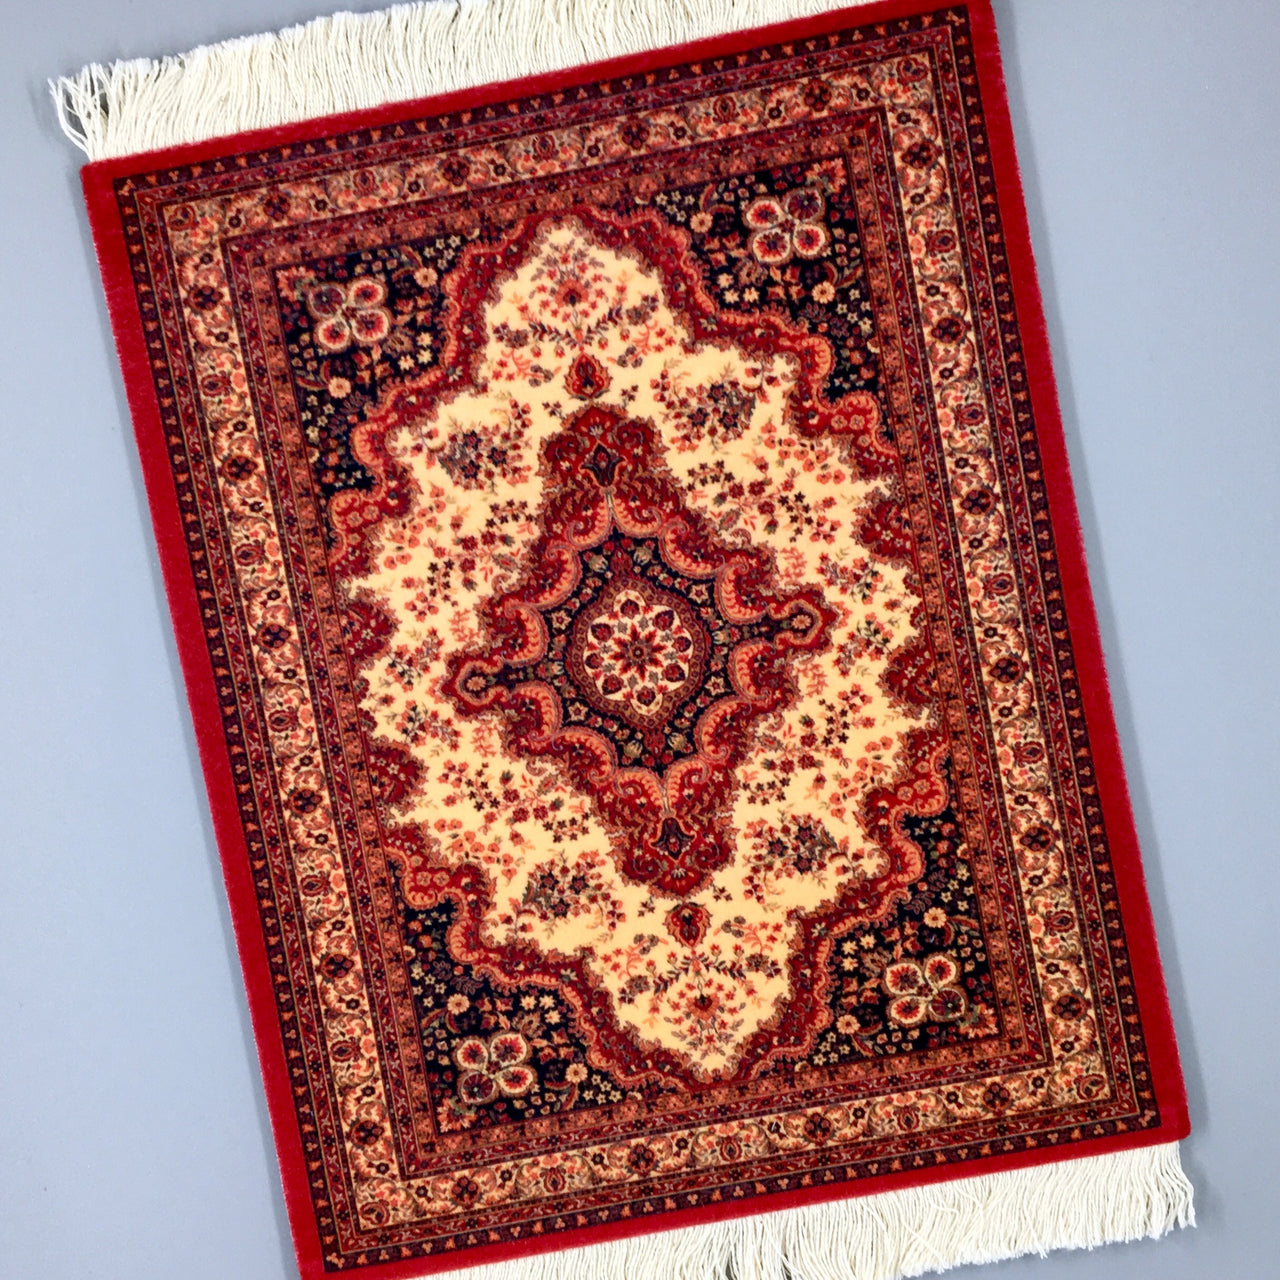 velvet persian rug mouse pad with fringe in red